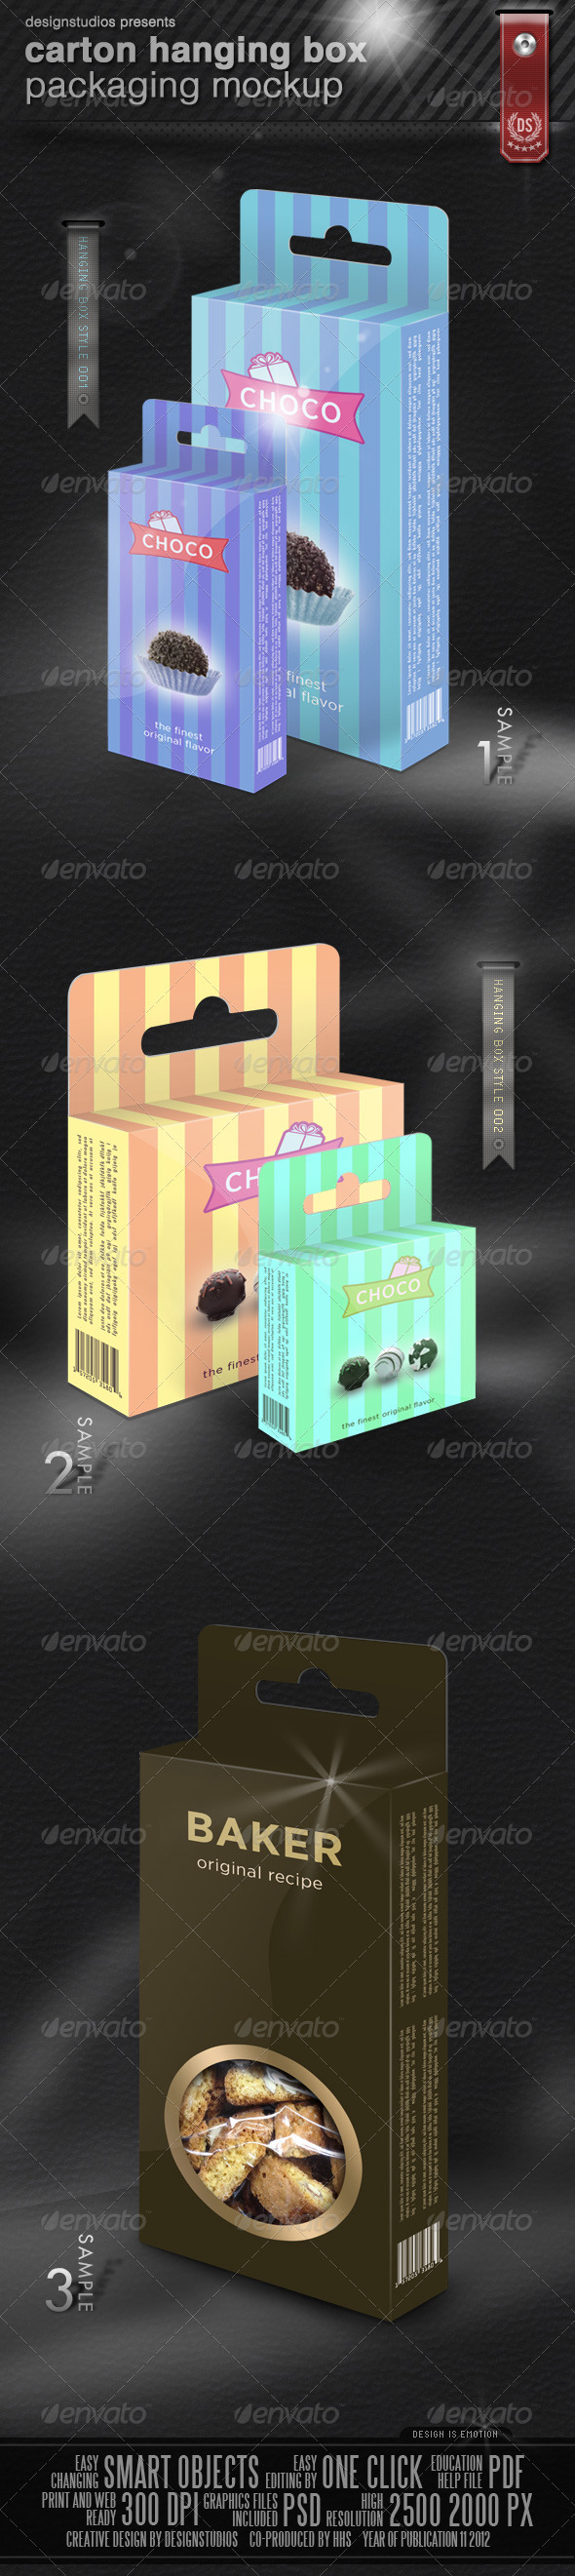 GraphicRiver Carton Hanging Box Packaging Mock-Up 3446898